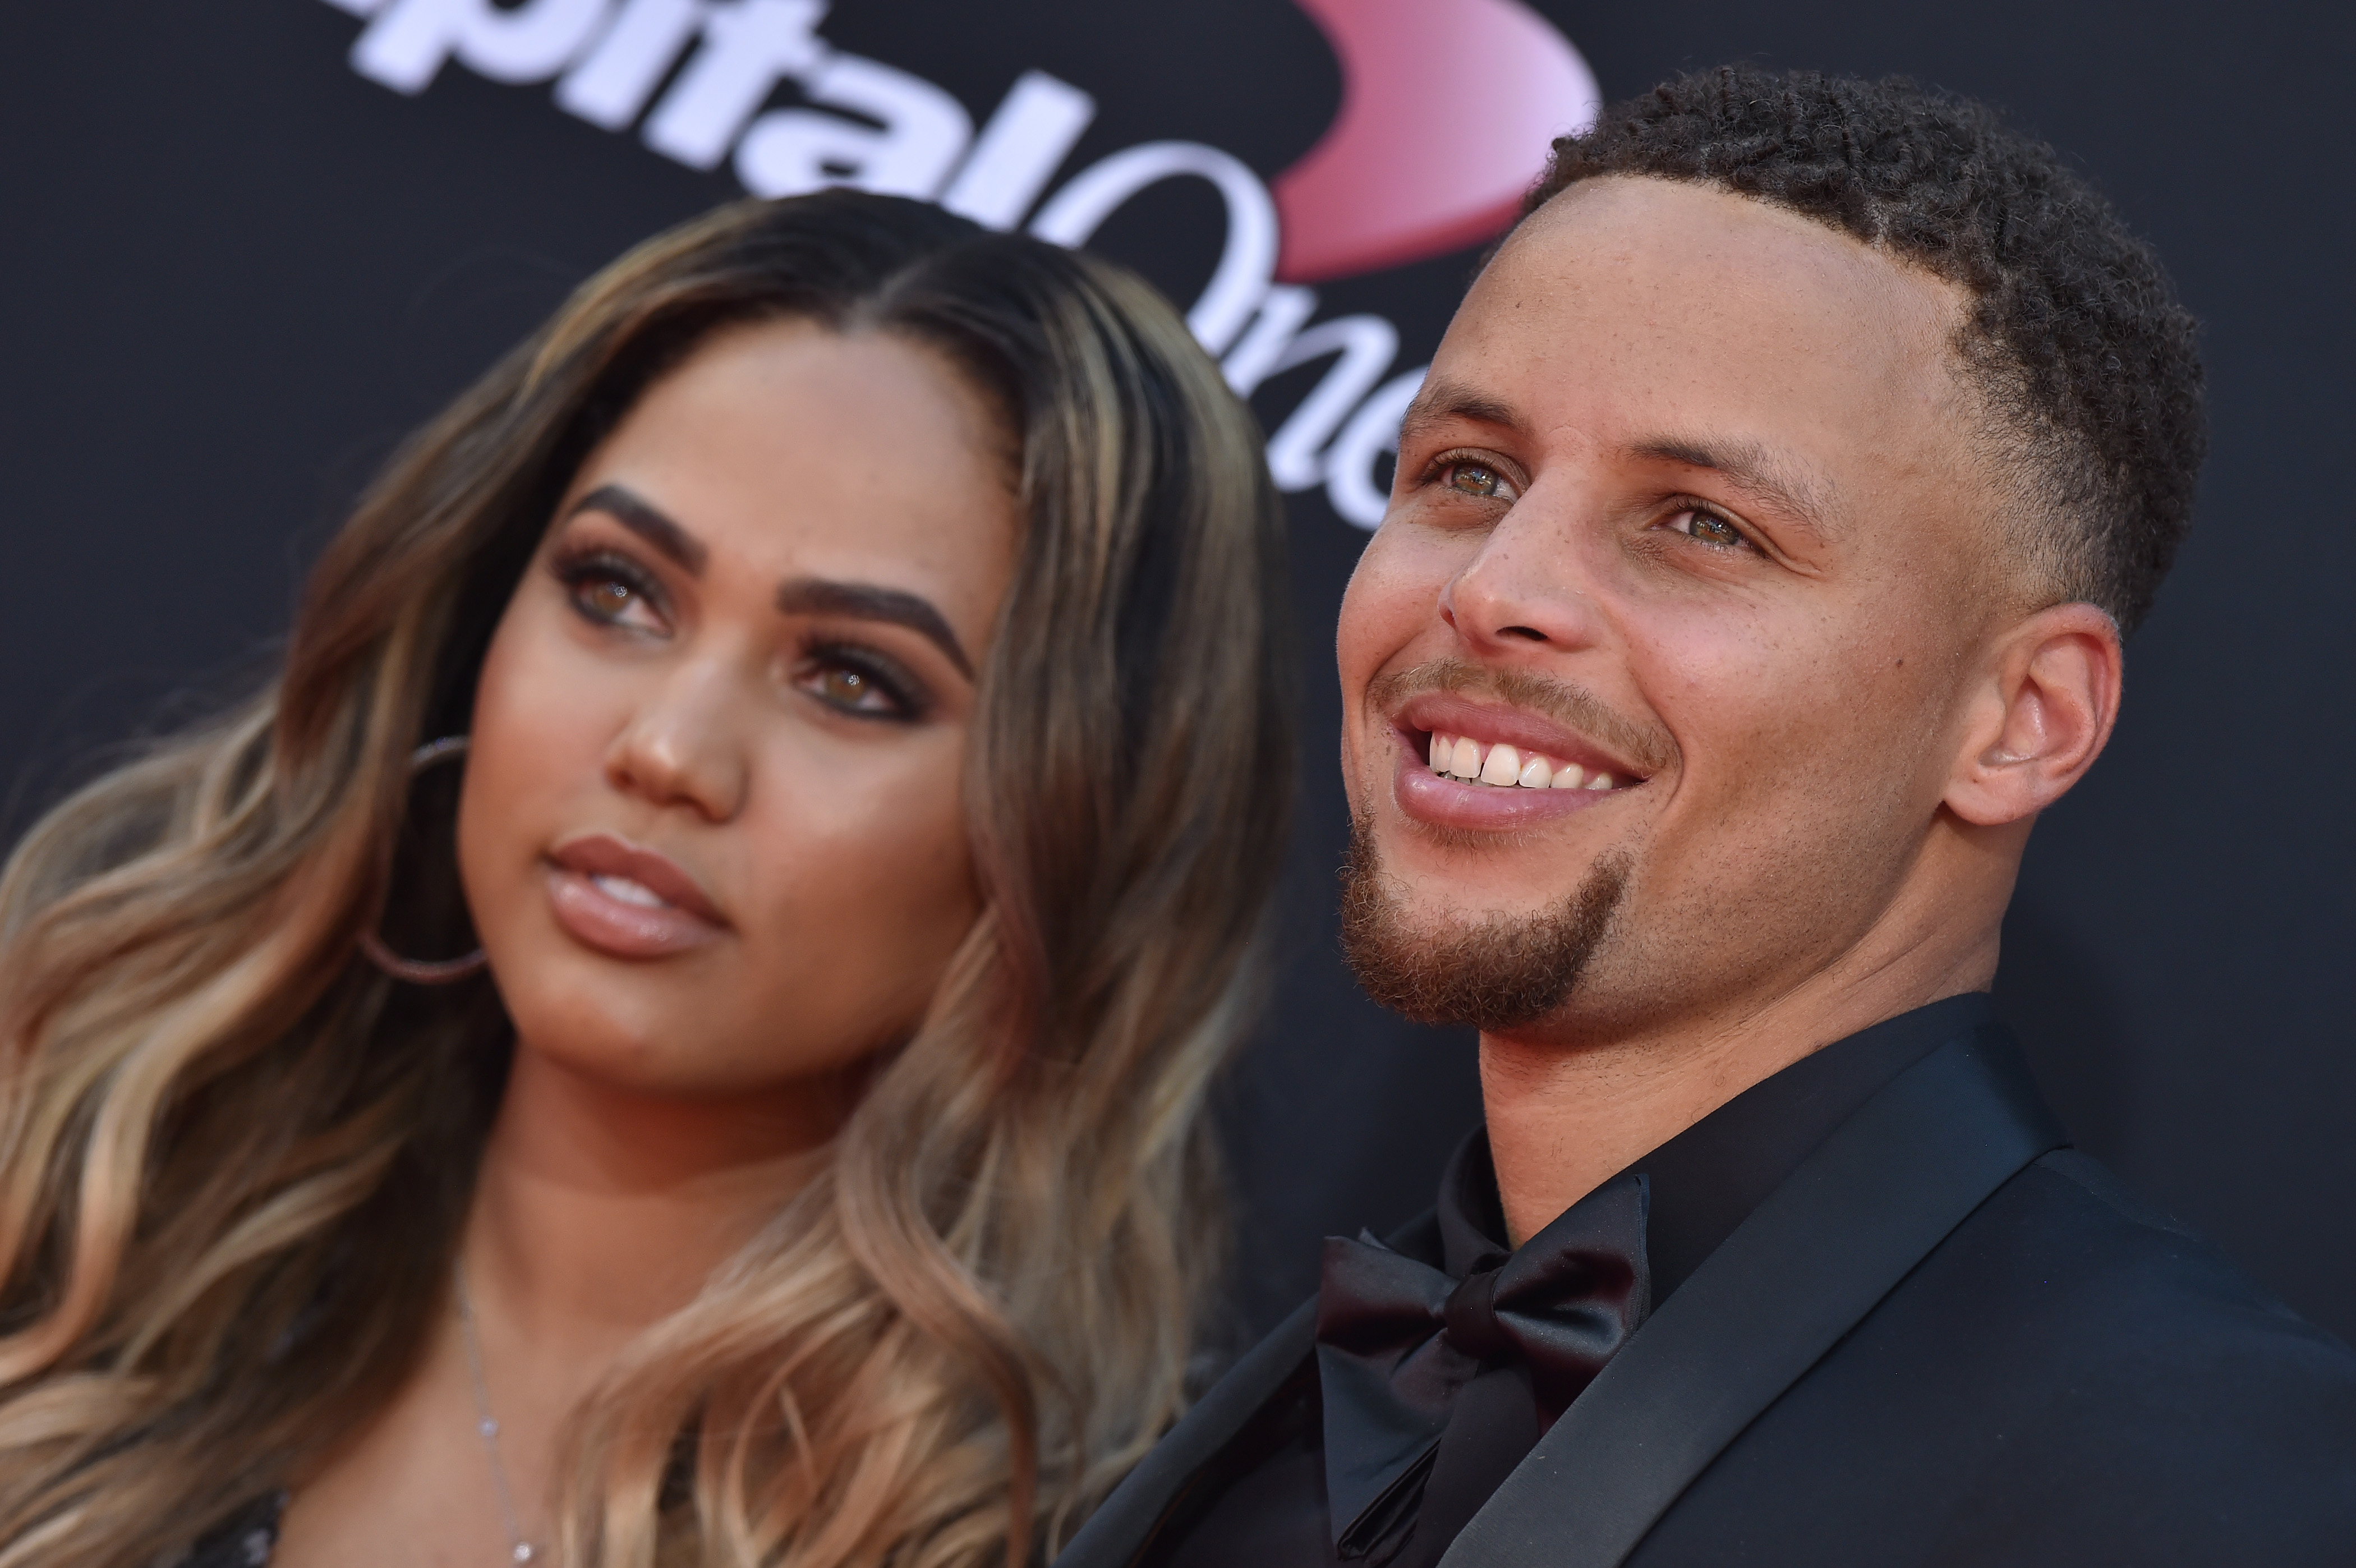 Ayesha Curry claps back at nude photo critics who call her a hypocrite